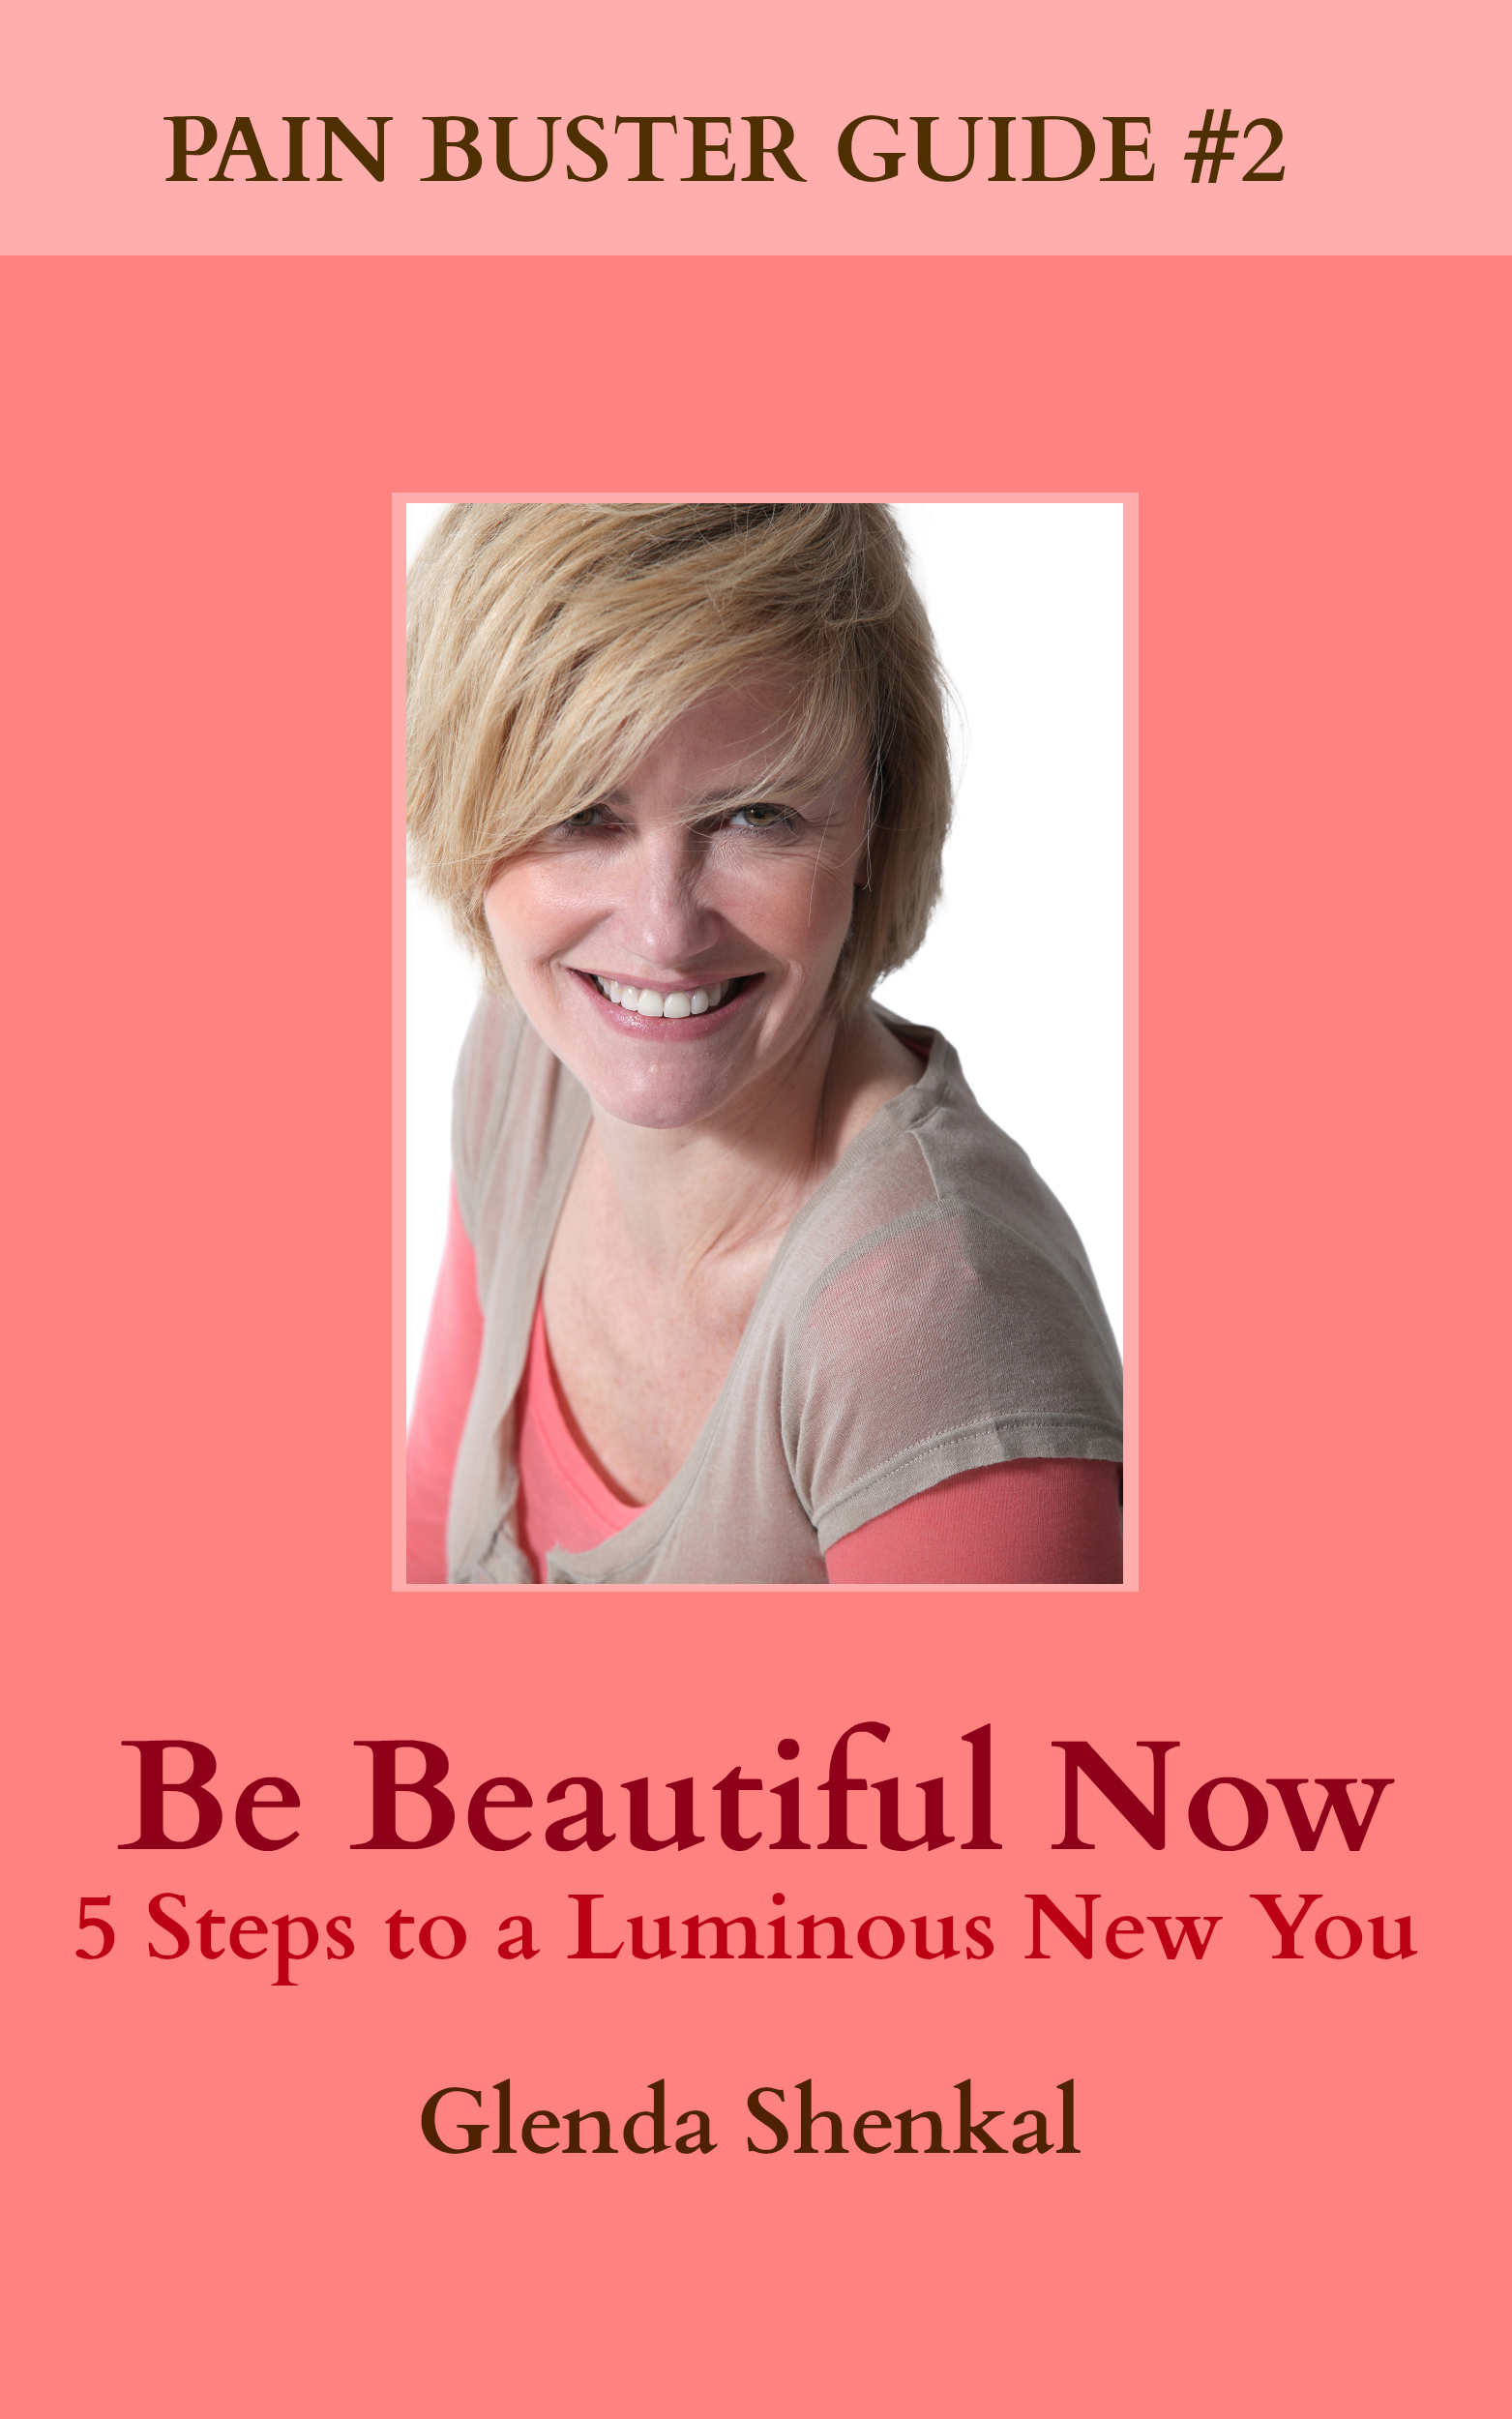 BE BEAUTIFUL NOW: 5 Steps to a Luminous New You